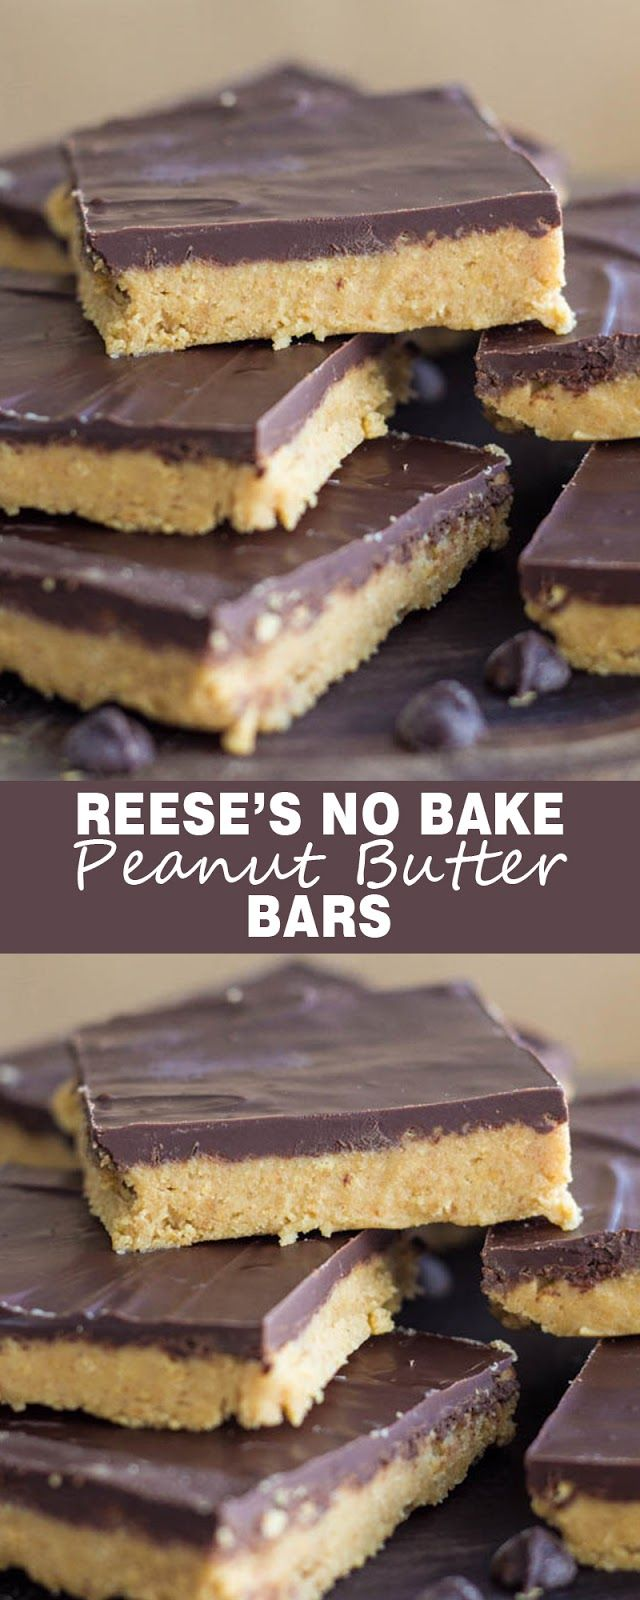 REESE'S NO BAKE PEANUT BUTTER BARS